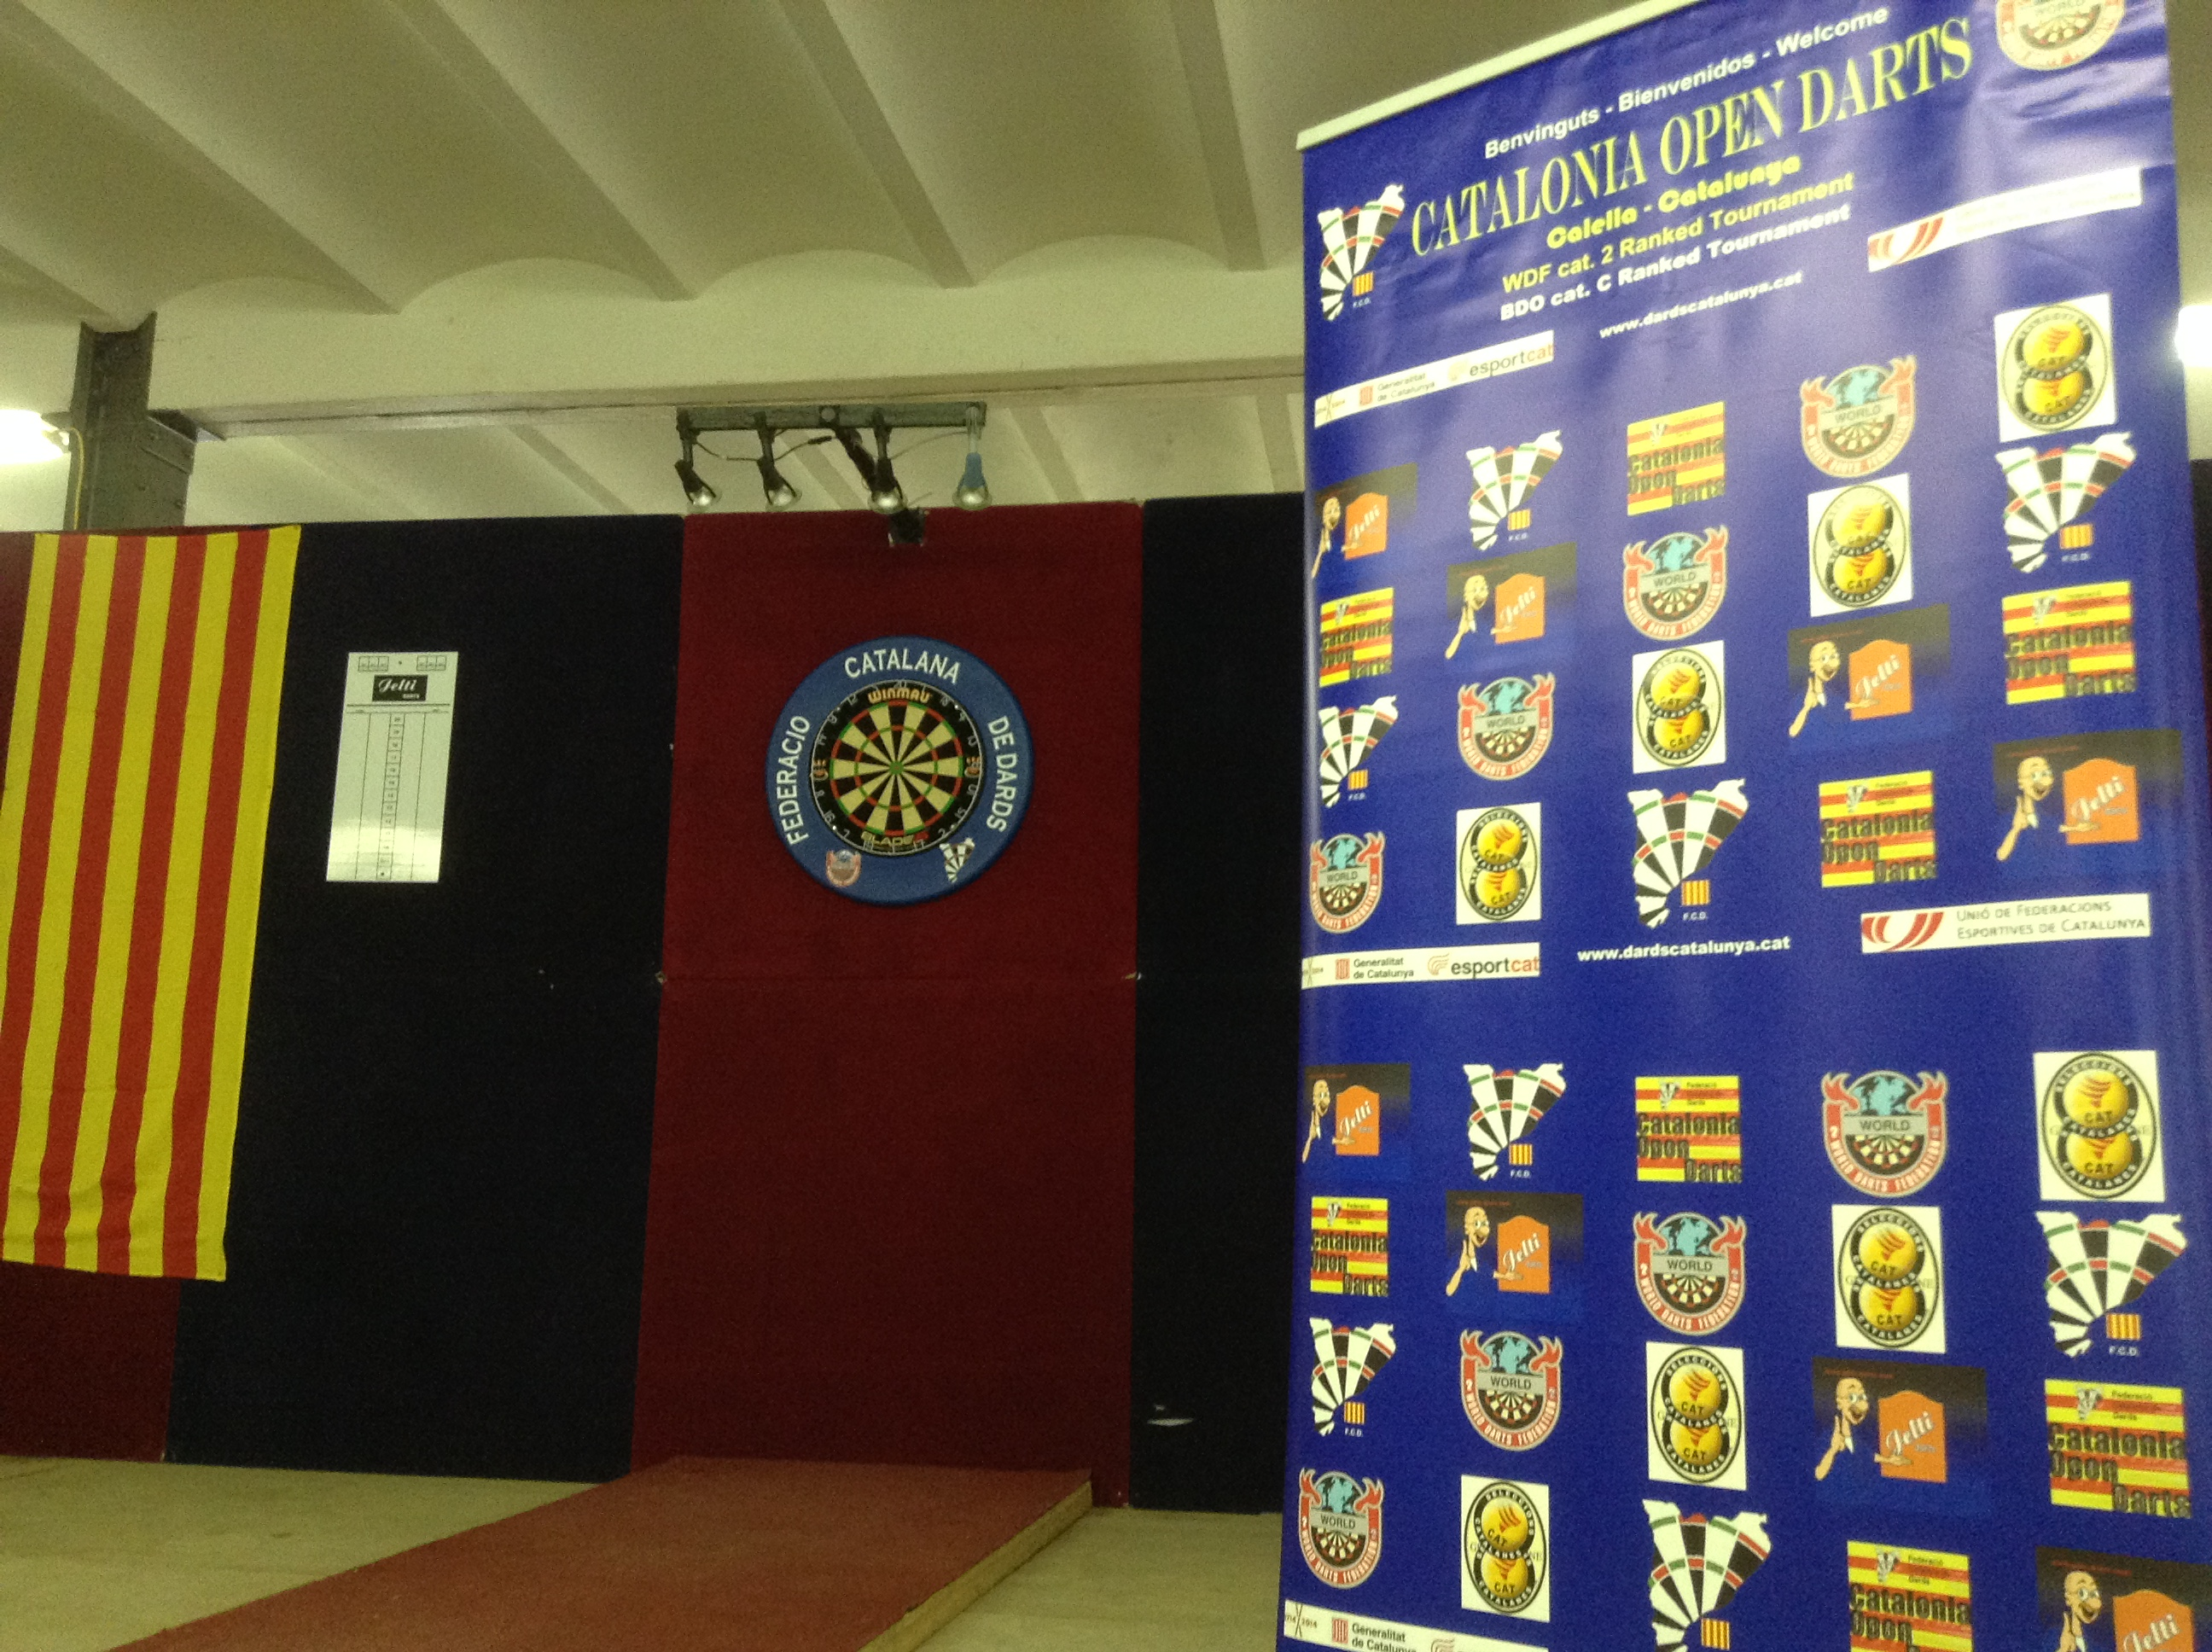 CATALONIA OPEN DARTS 2018